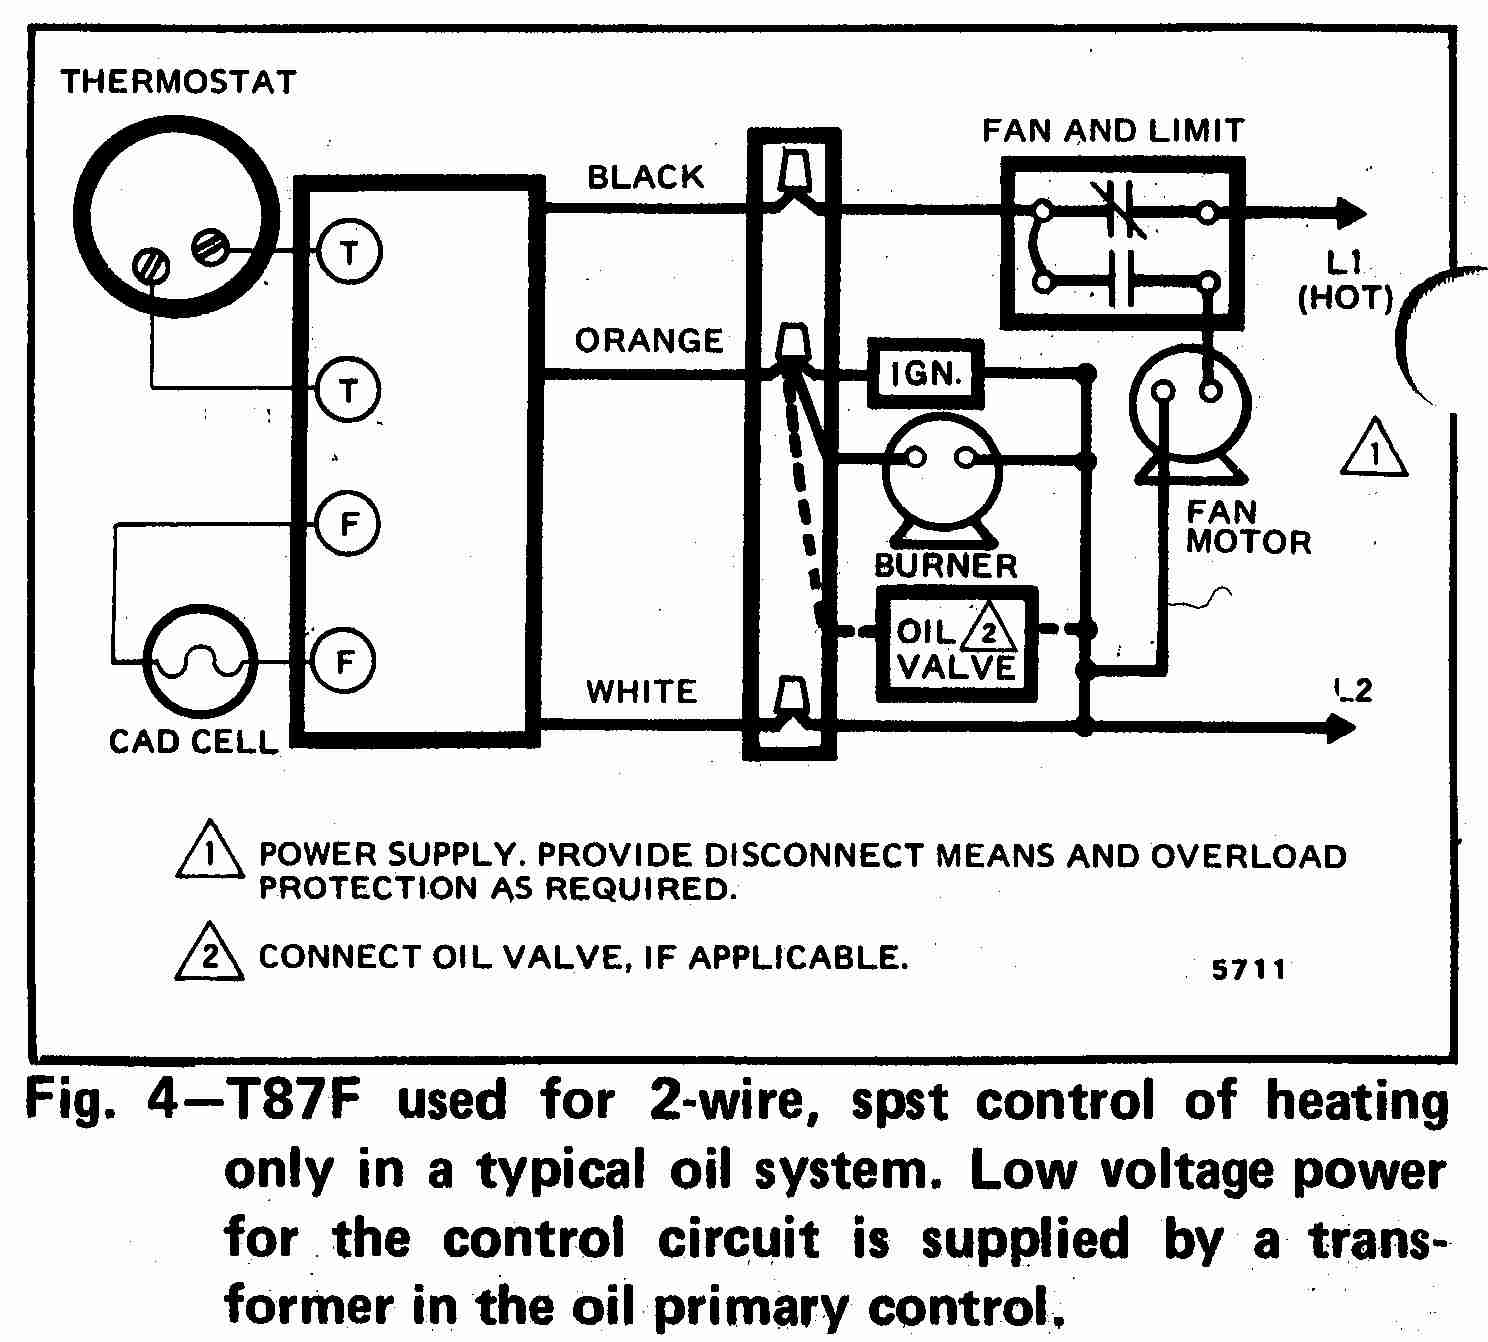 room thermostat wiring diagrams for hvac systems rh inspectapedia com hotel switch wiring diagram hot grips wiring diagram